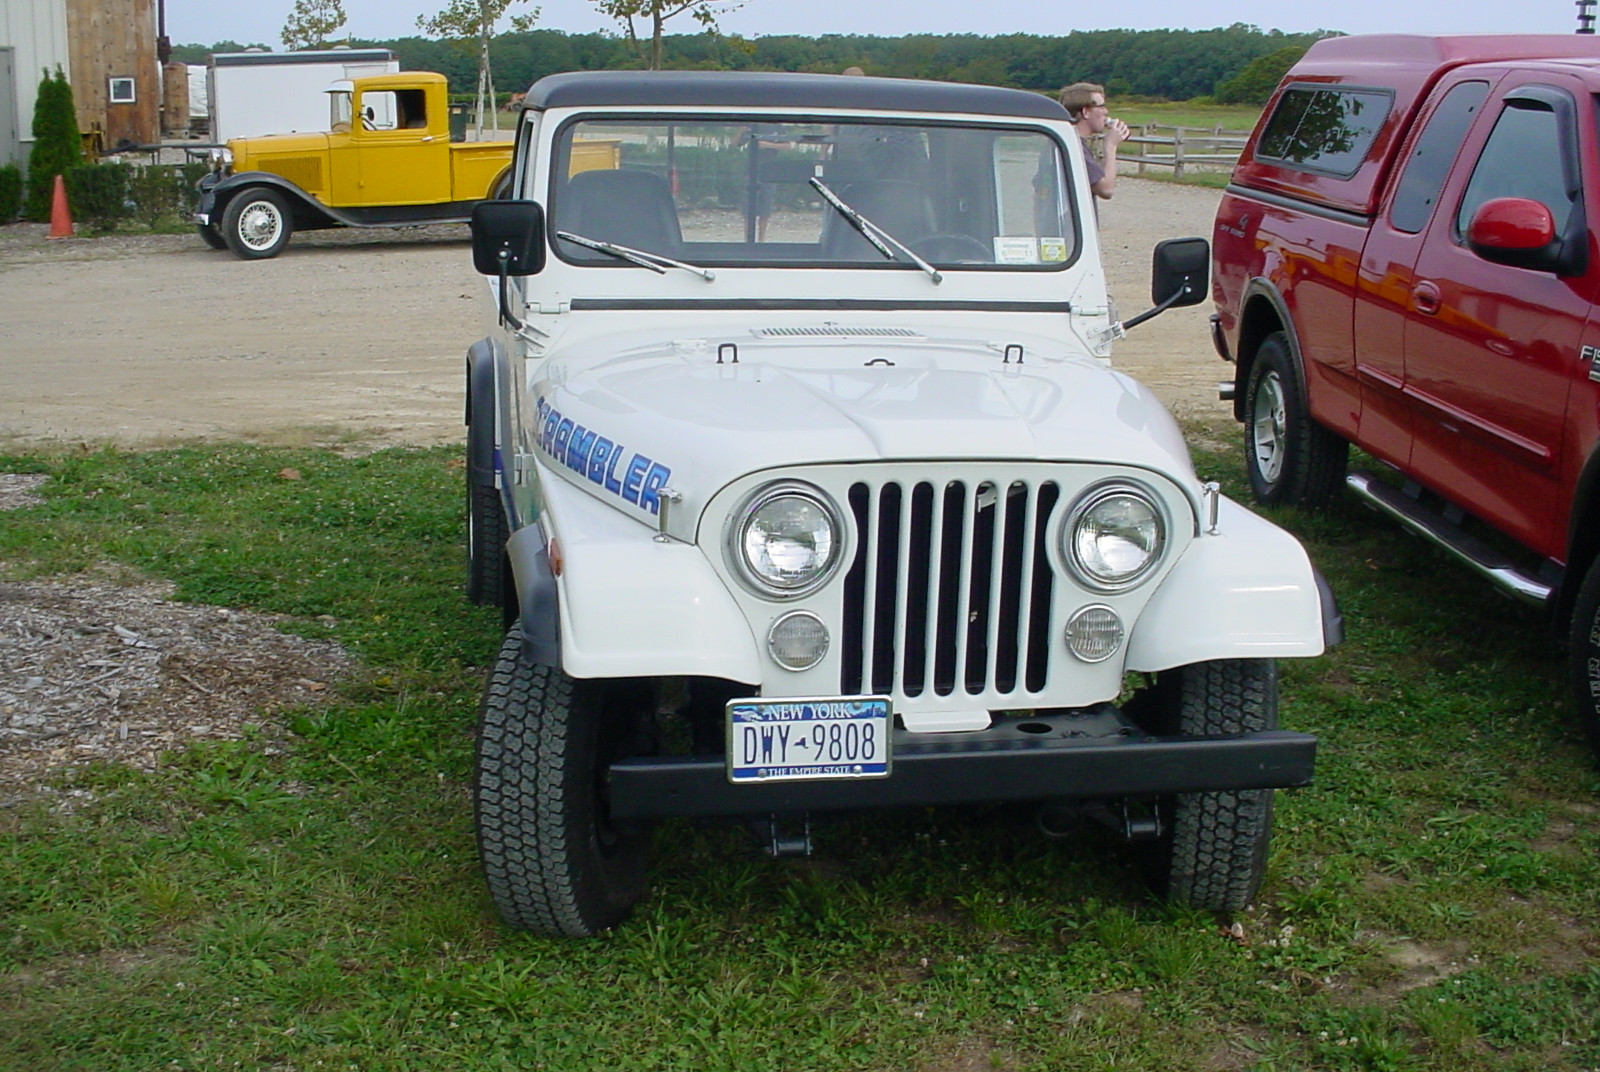 Philip Huntington's 1984 Jeep CJ-8 Scrambler pickup & Ron Bruschi's 1933 Ford pickup